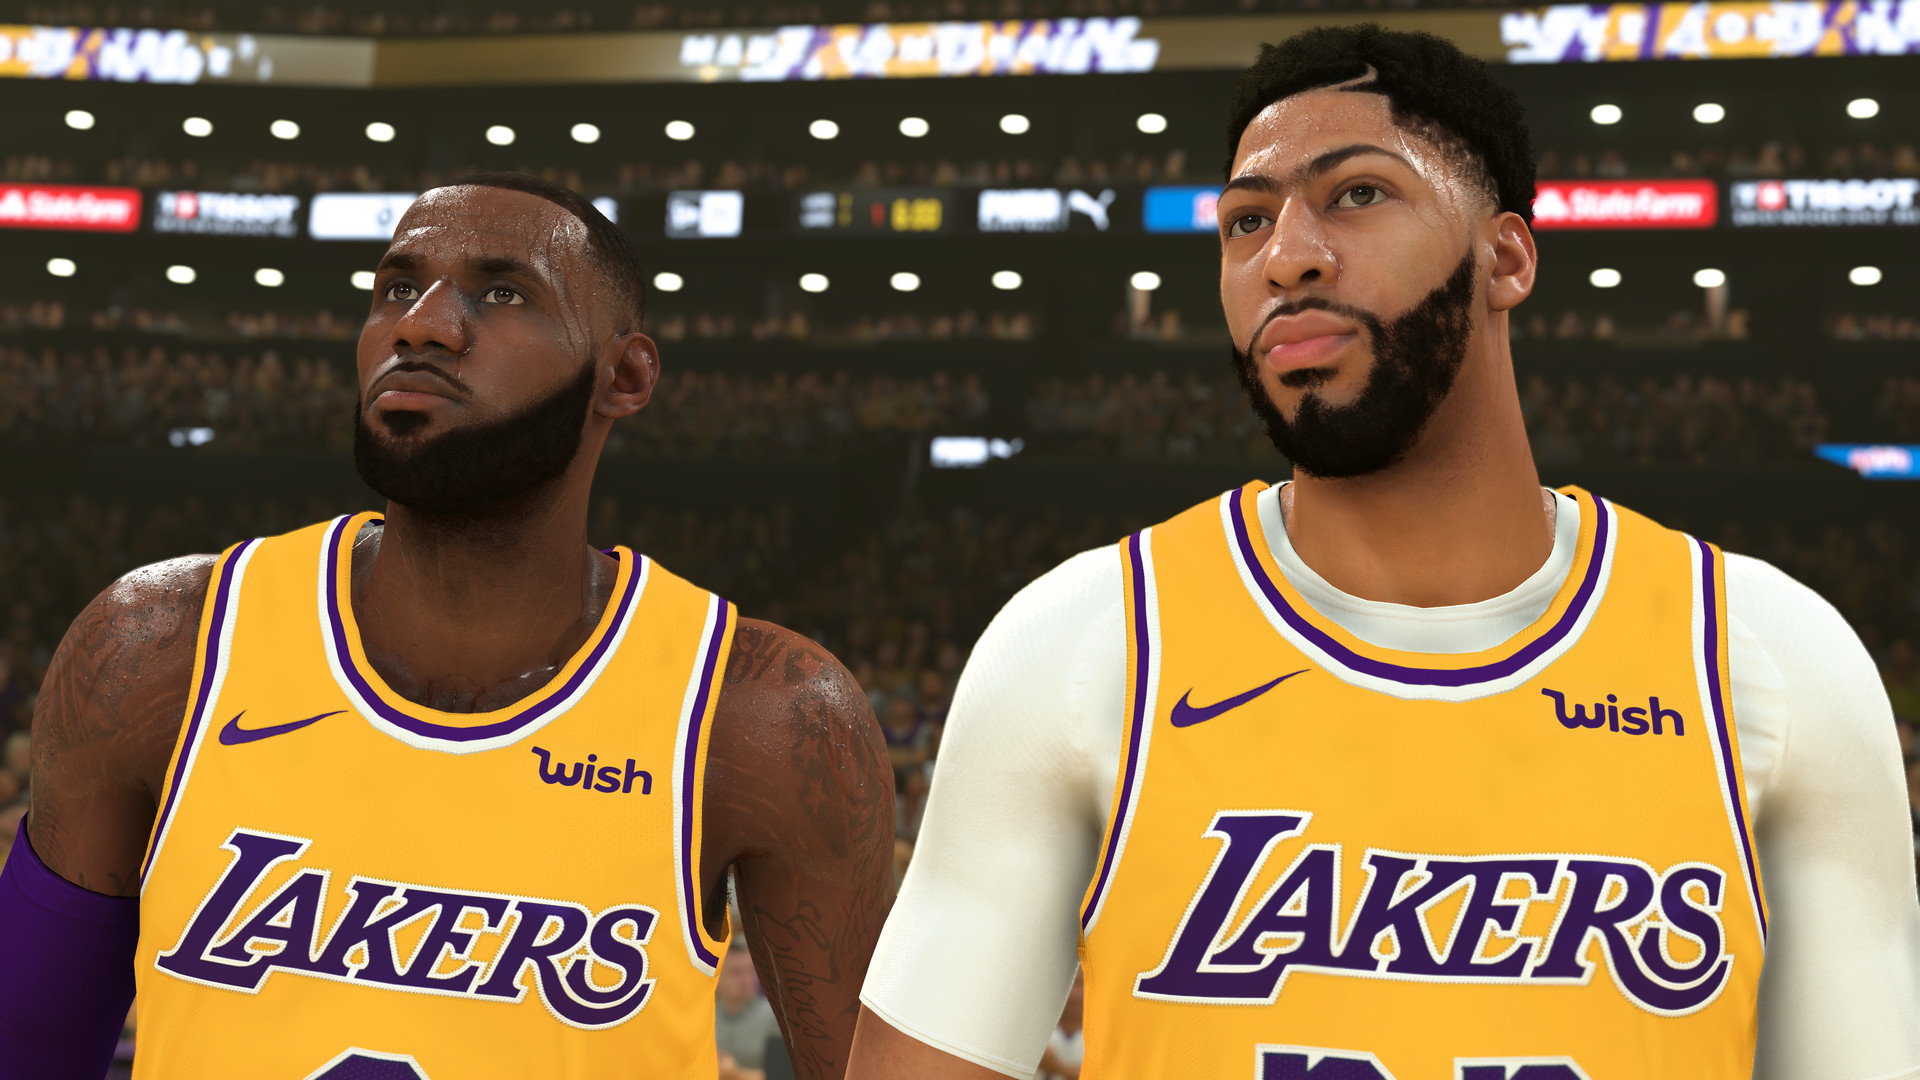 NBA 2K20 Patch 8 Update is a Failure